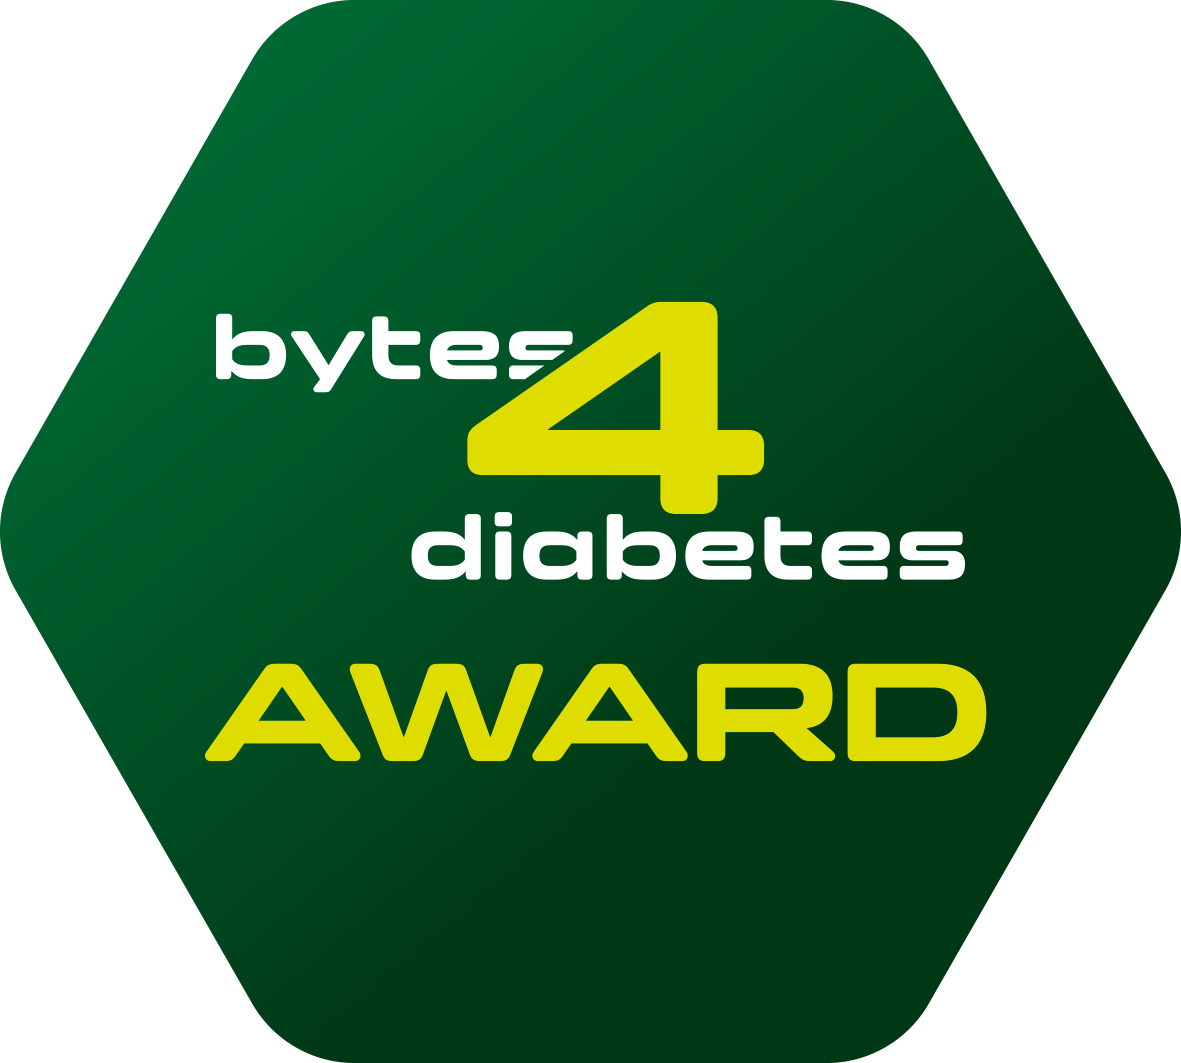 bytes4diabetes-Award